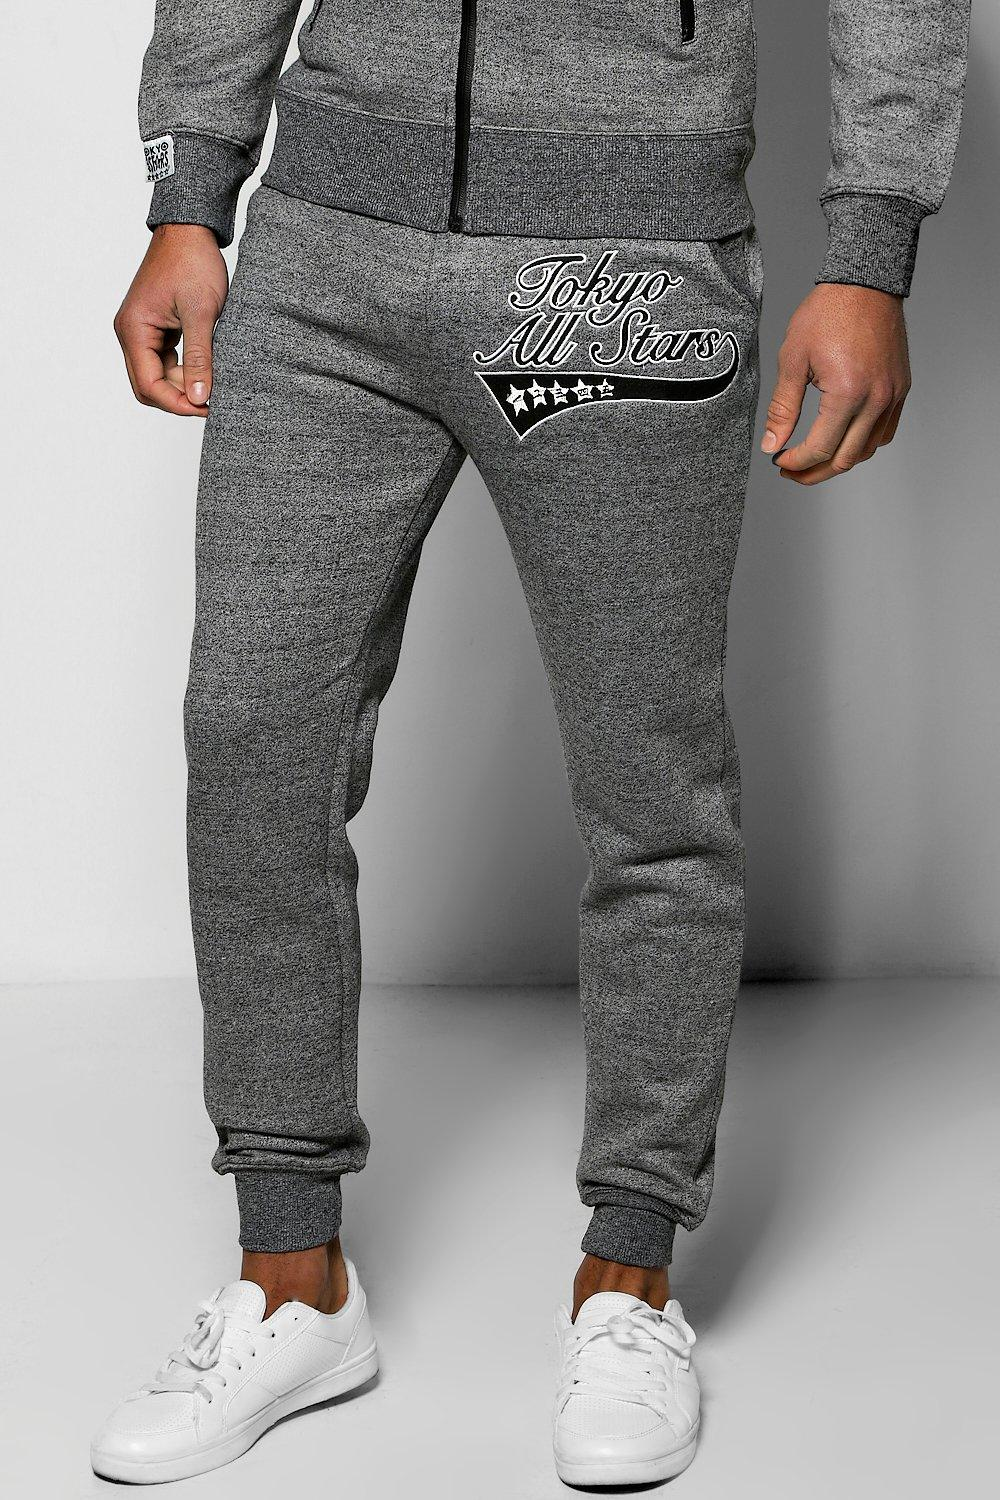 Image of All Stars Salt and Pepper Joggers - black